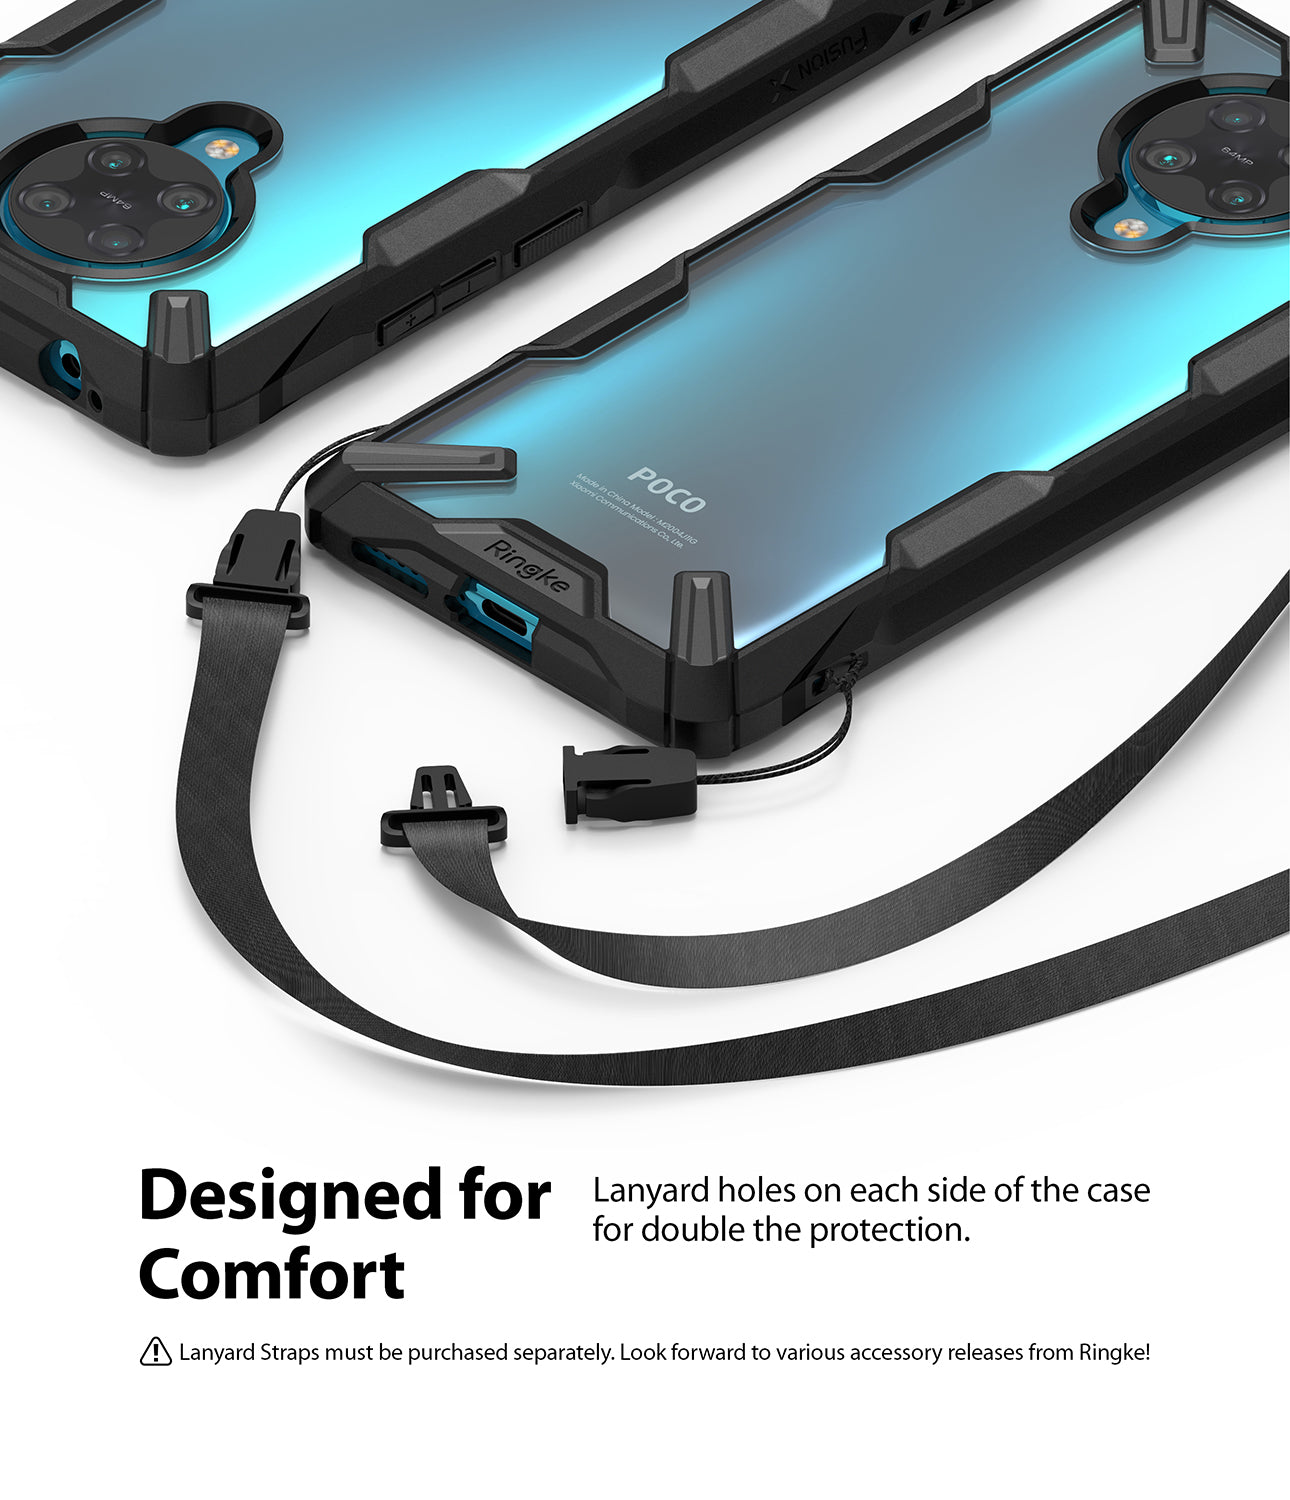 designed for comfort - lanyard holes on each side of the case for double protection